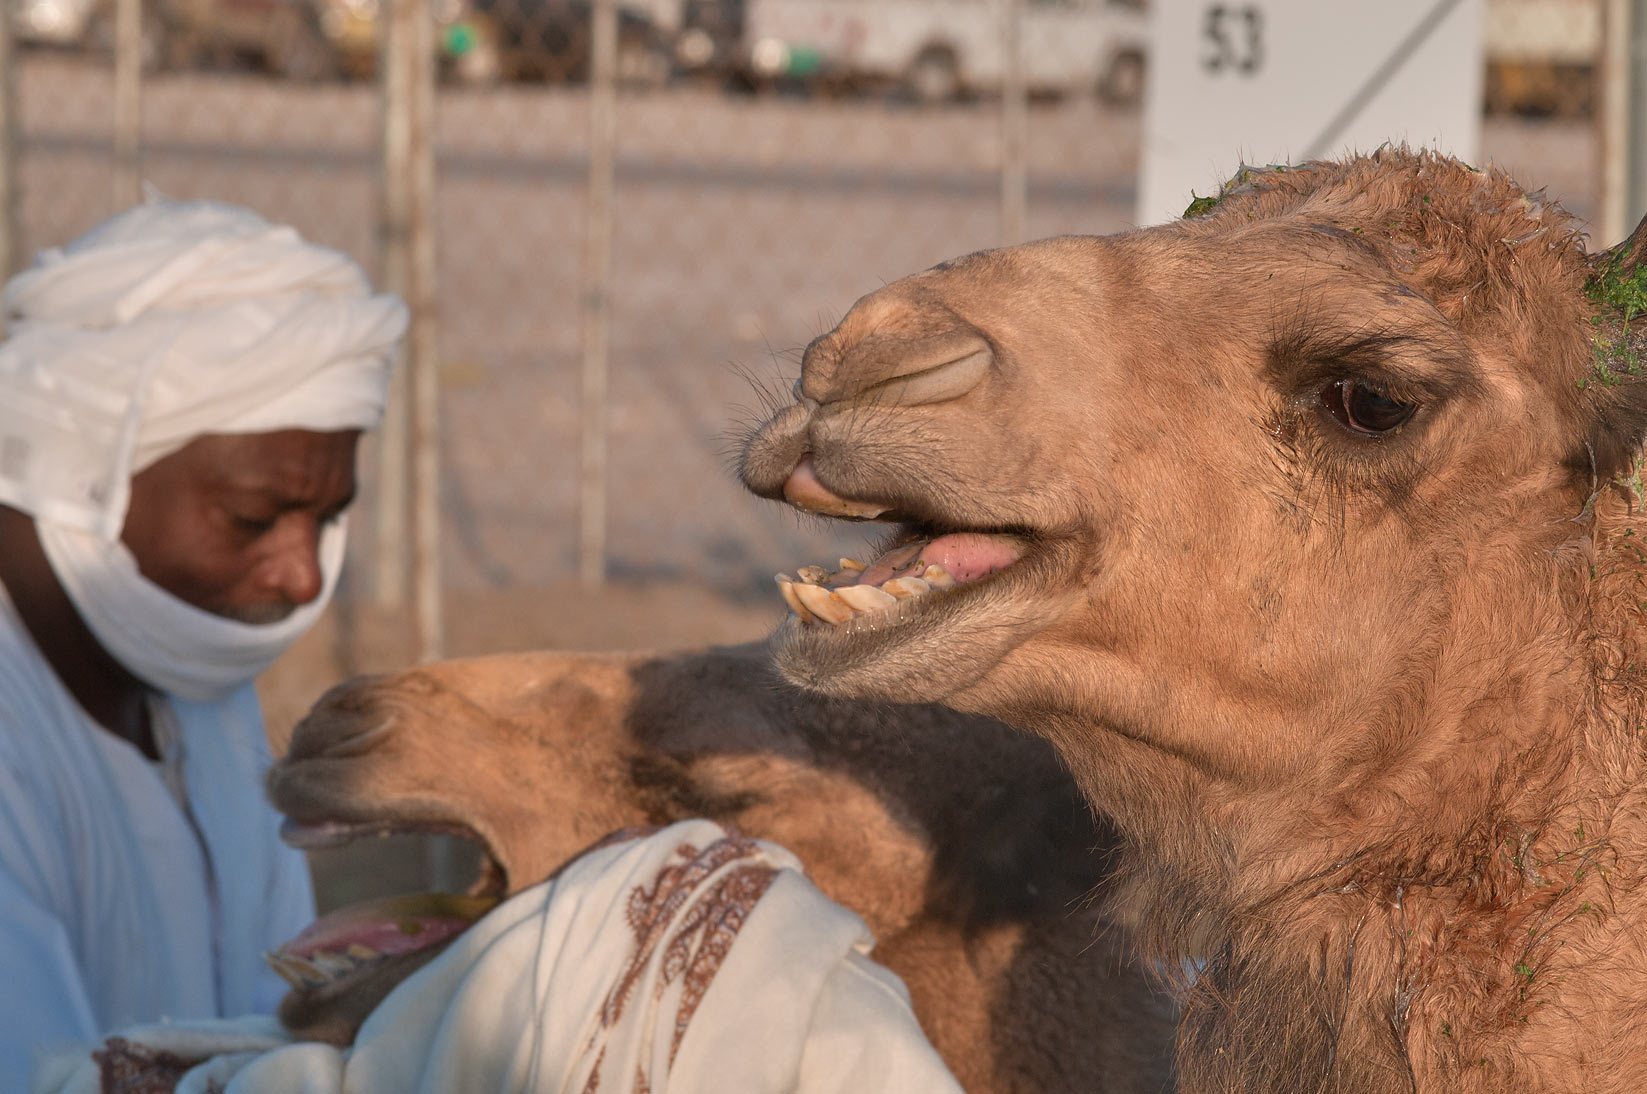 Crying camels in a truck in Camel Market (Souq), Wholesale Markets area. Doha, Qatar